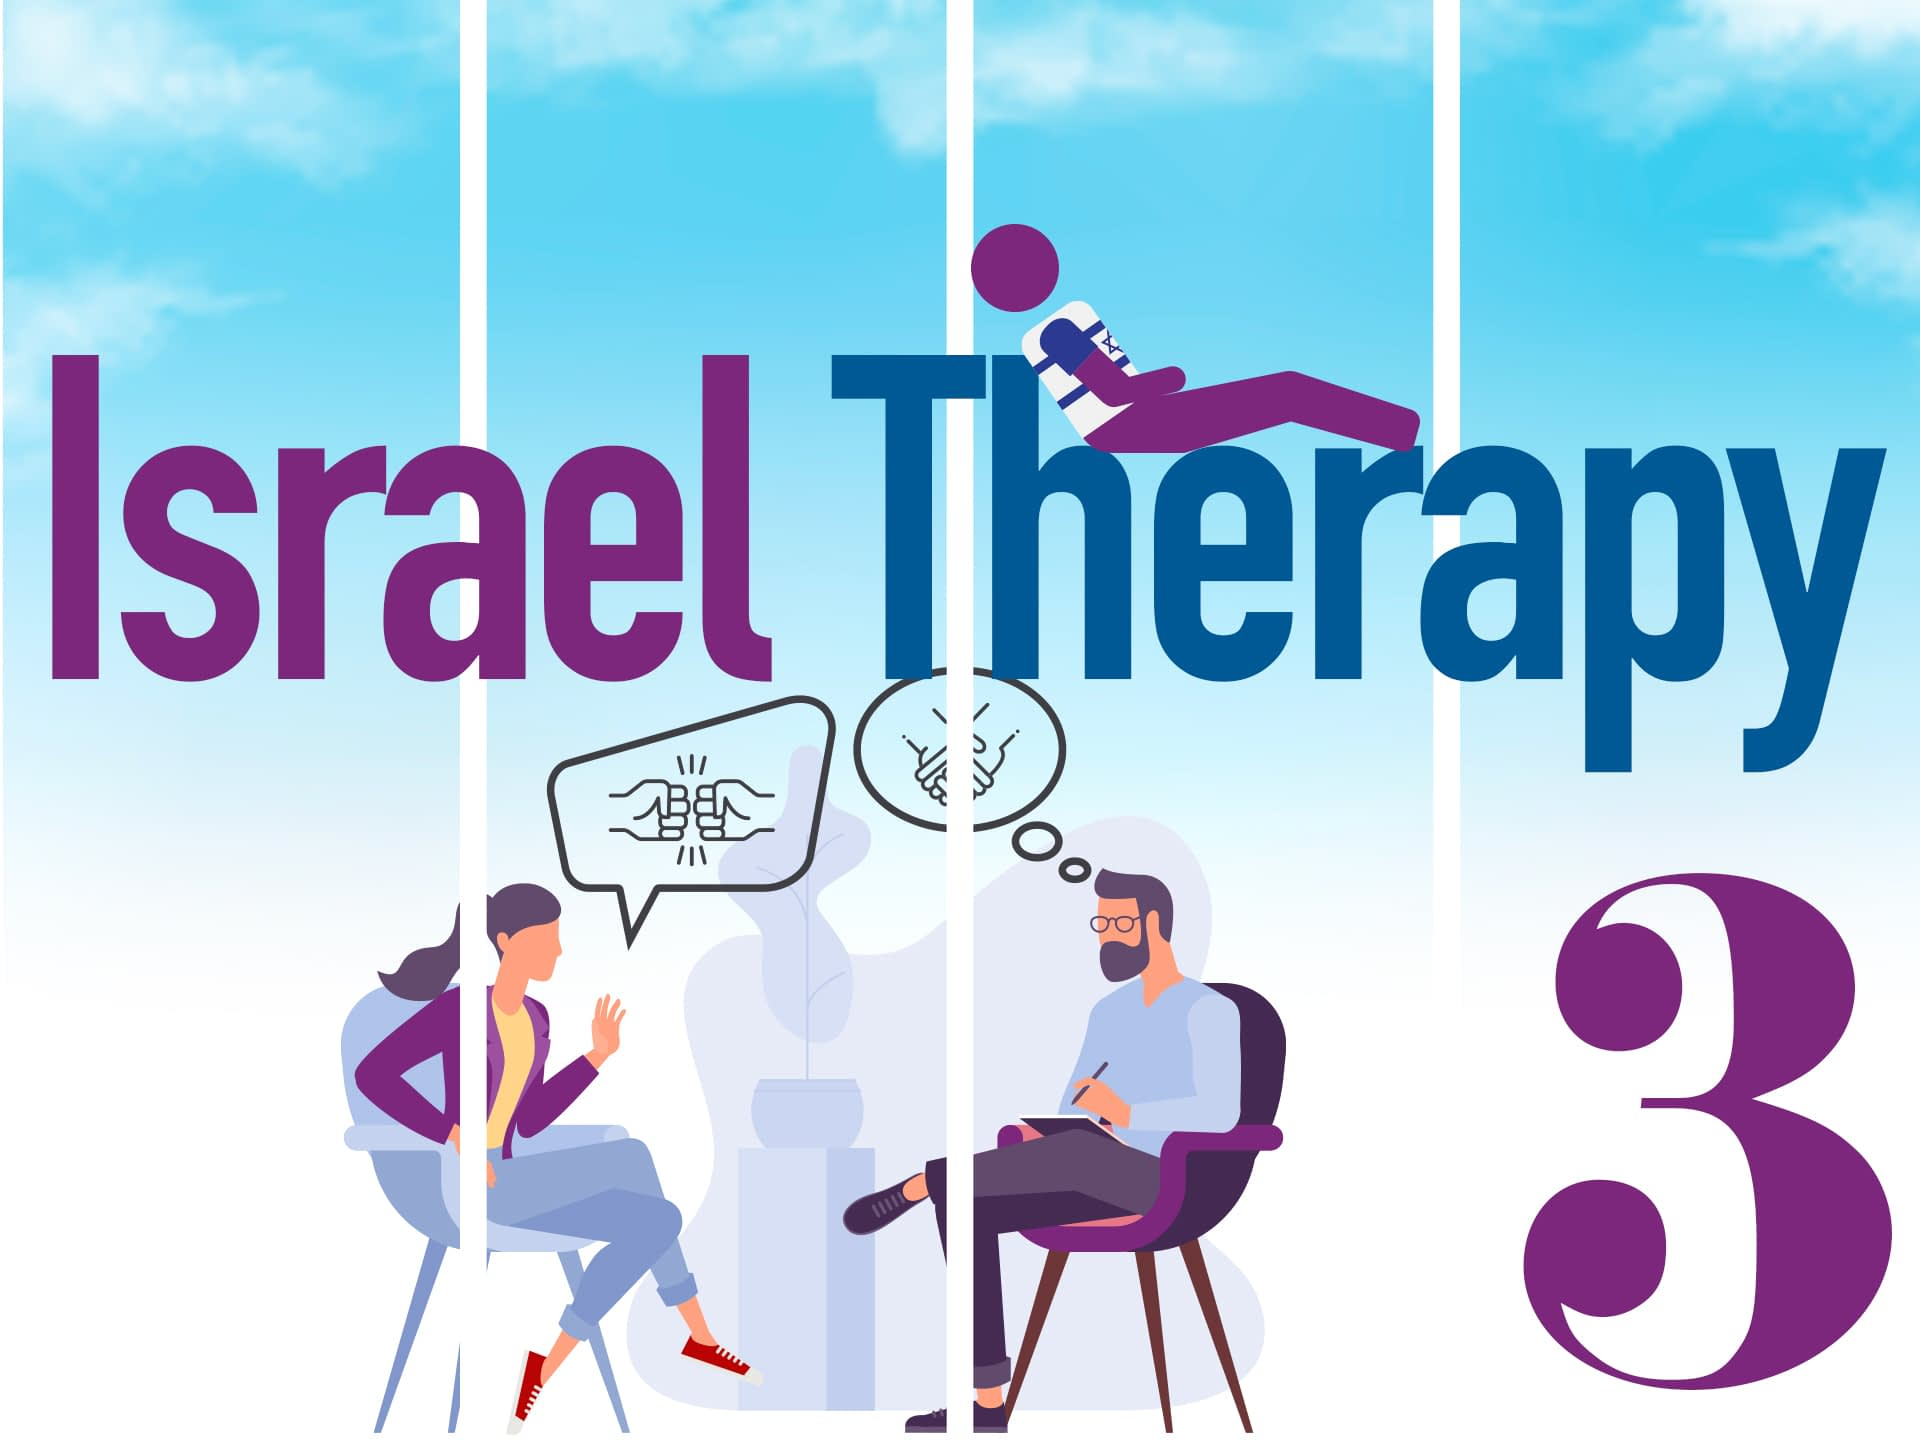 Israel Therapy: Session 3 - The Temple Emanu-El Streicker Center - Israel Therapy: For The Conflicted – Session 3